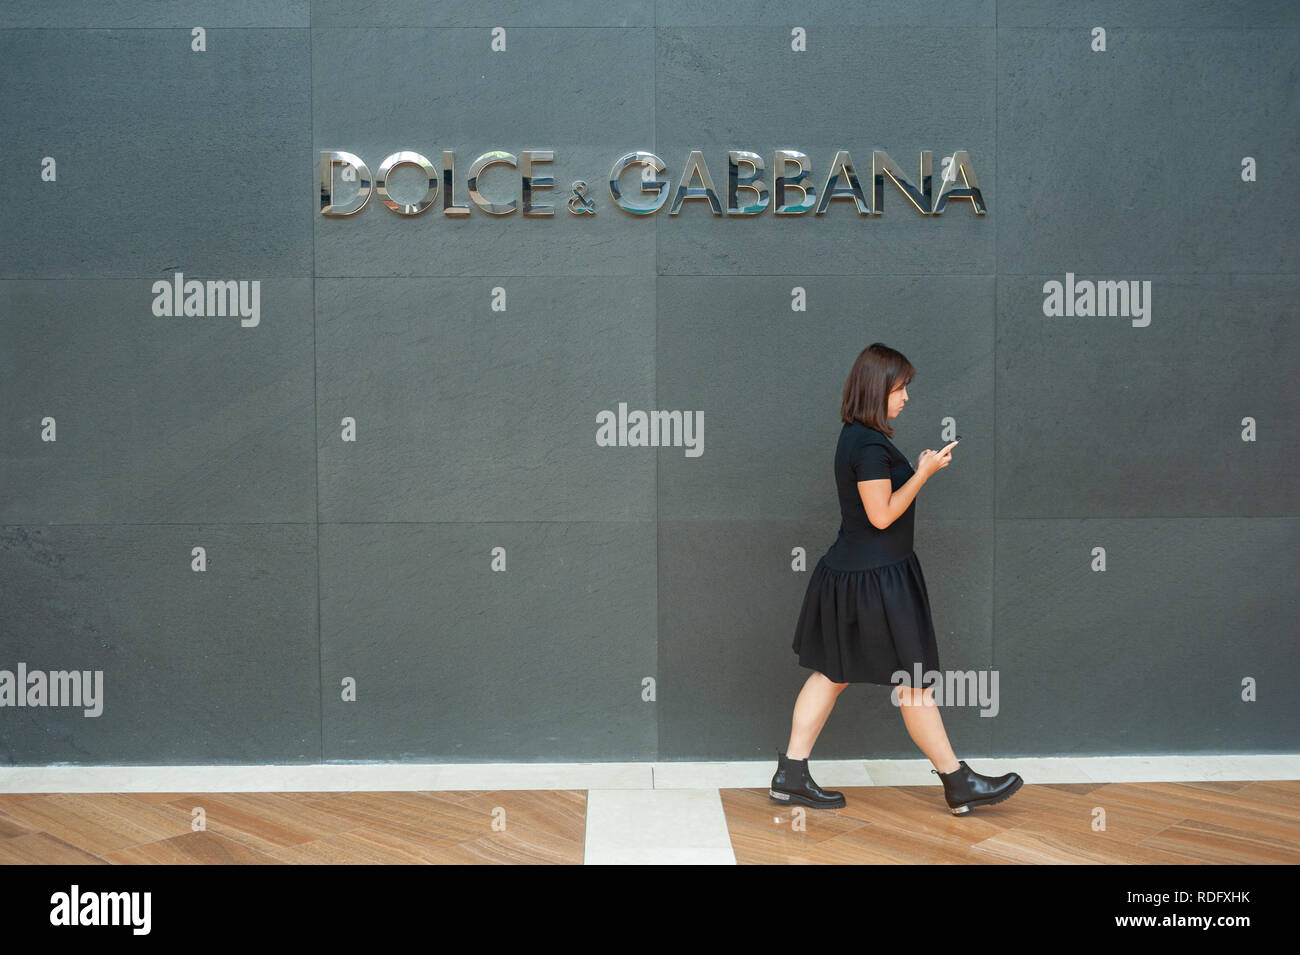 04.04.2018, Singapore, Republic of Singapore, Asia - A woman walks by a Dolce & Gabbana luxury fashion store in 'The Shoppes' shopping mall at Marina  - Stock Image